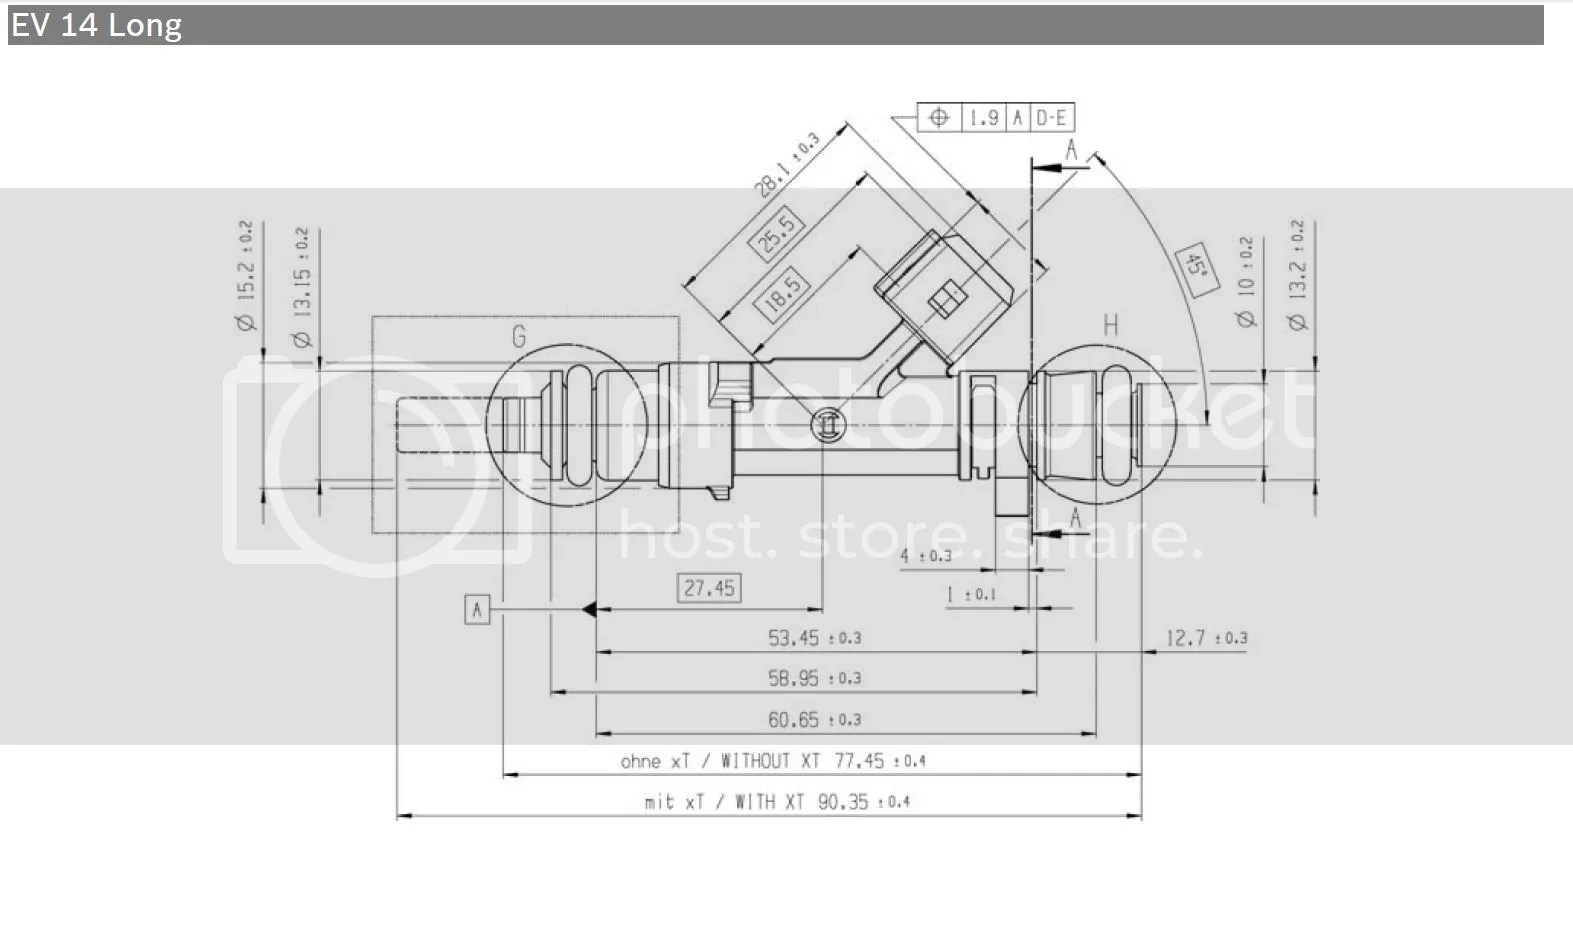 hight resolution of ev14 fuel injector wiring diagram schema wiring diagram ev14 fuel injector wiring diagram